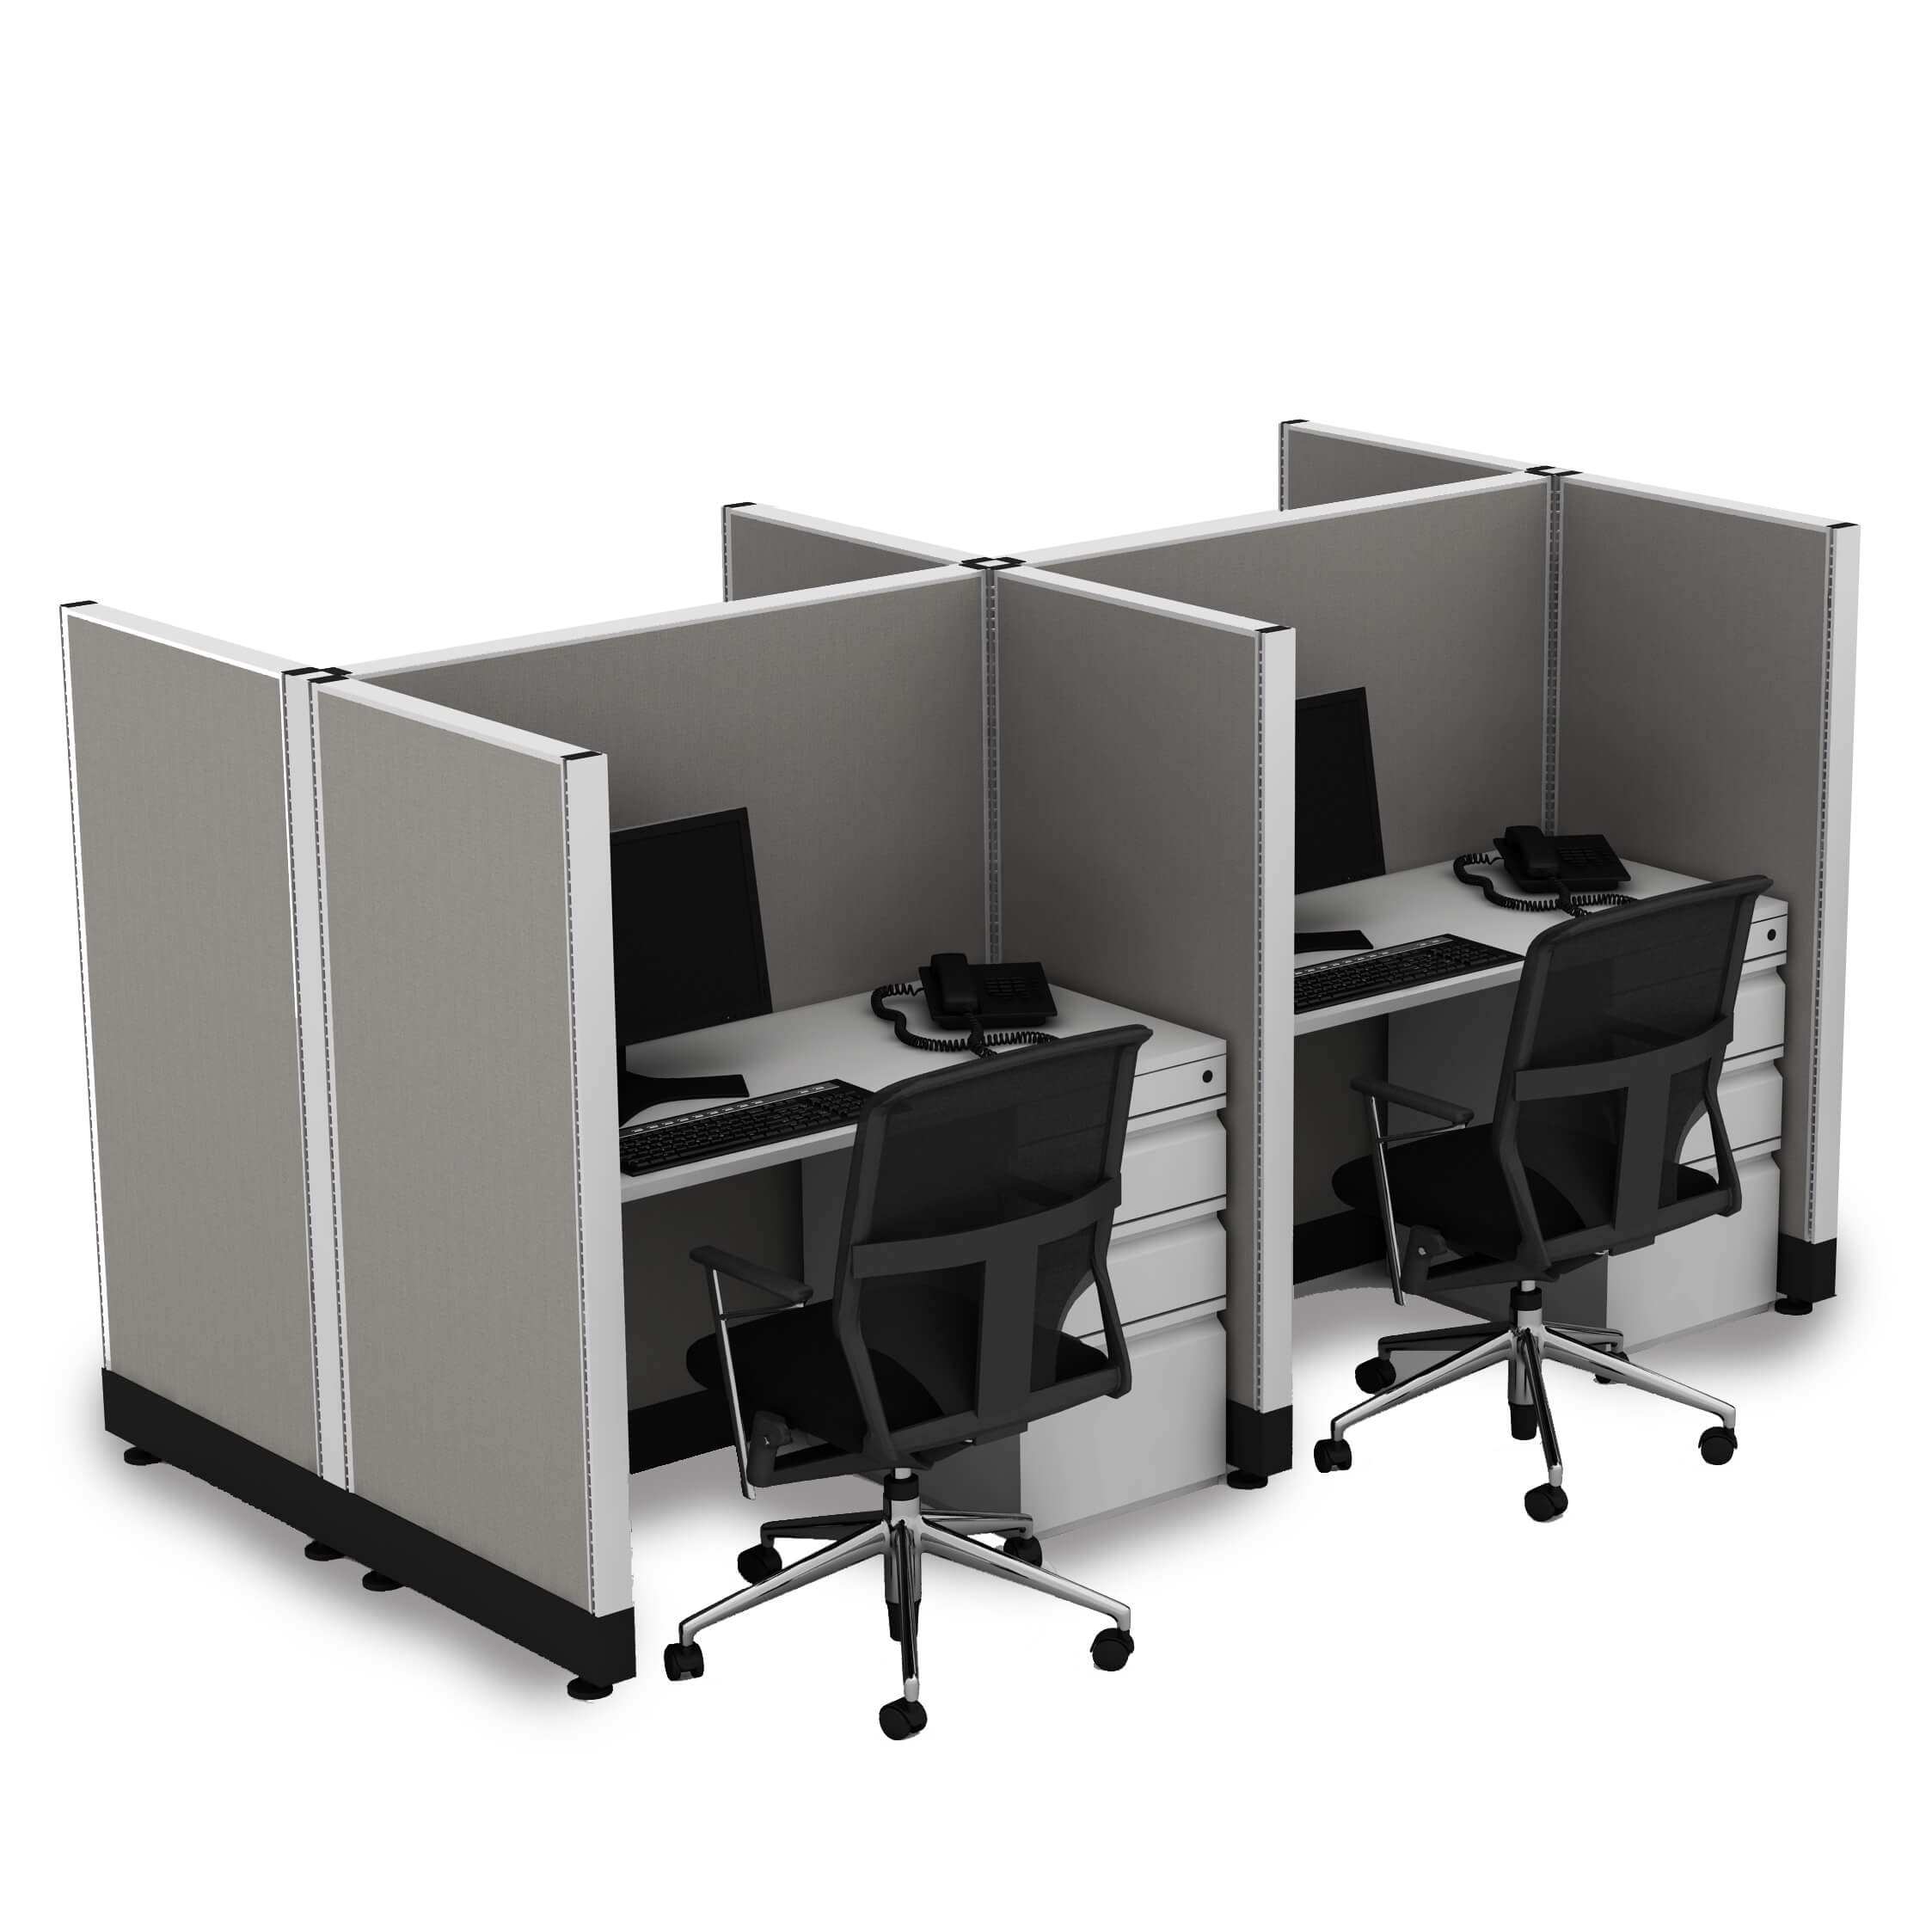 Hot desking hotelling station 4 pack powered